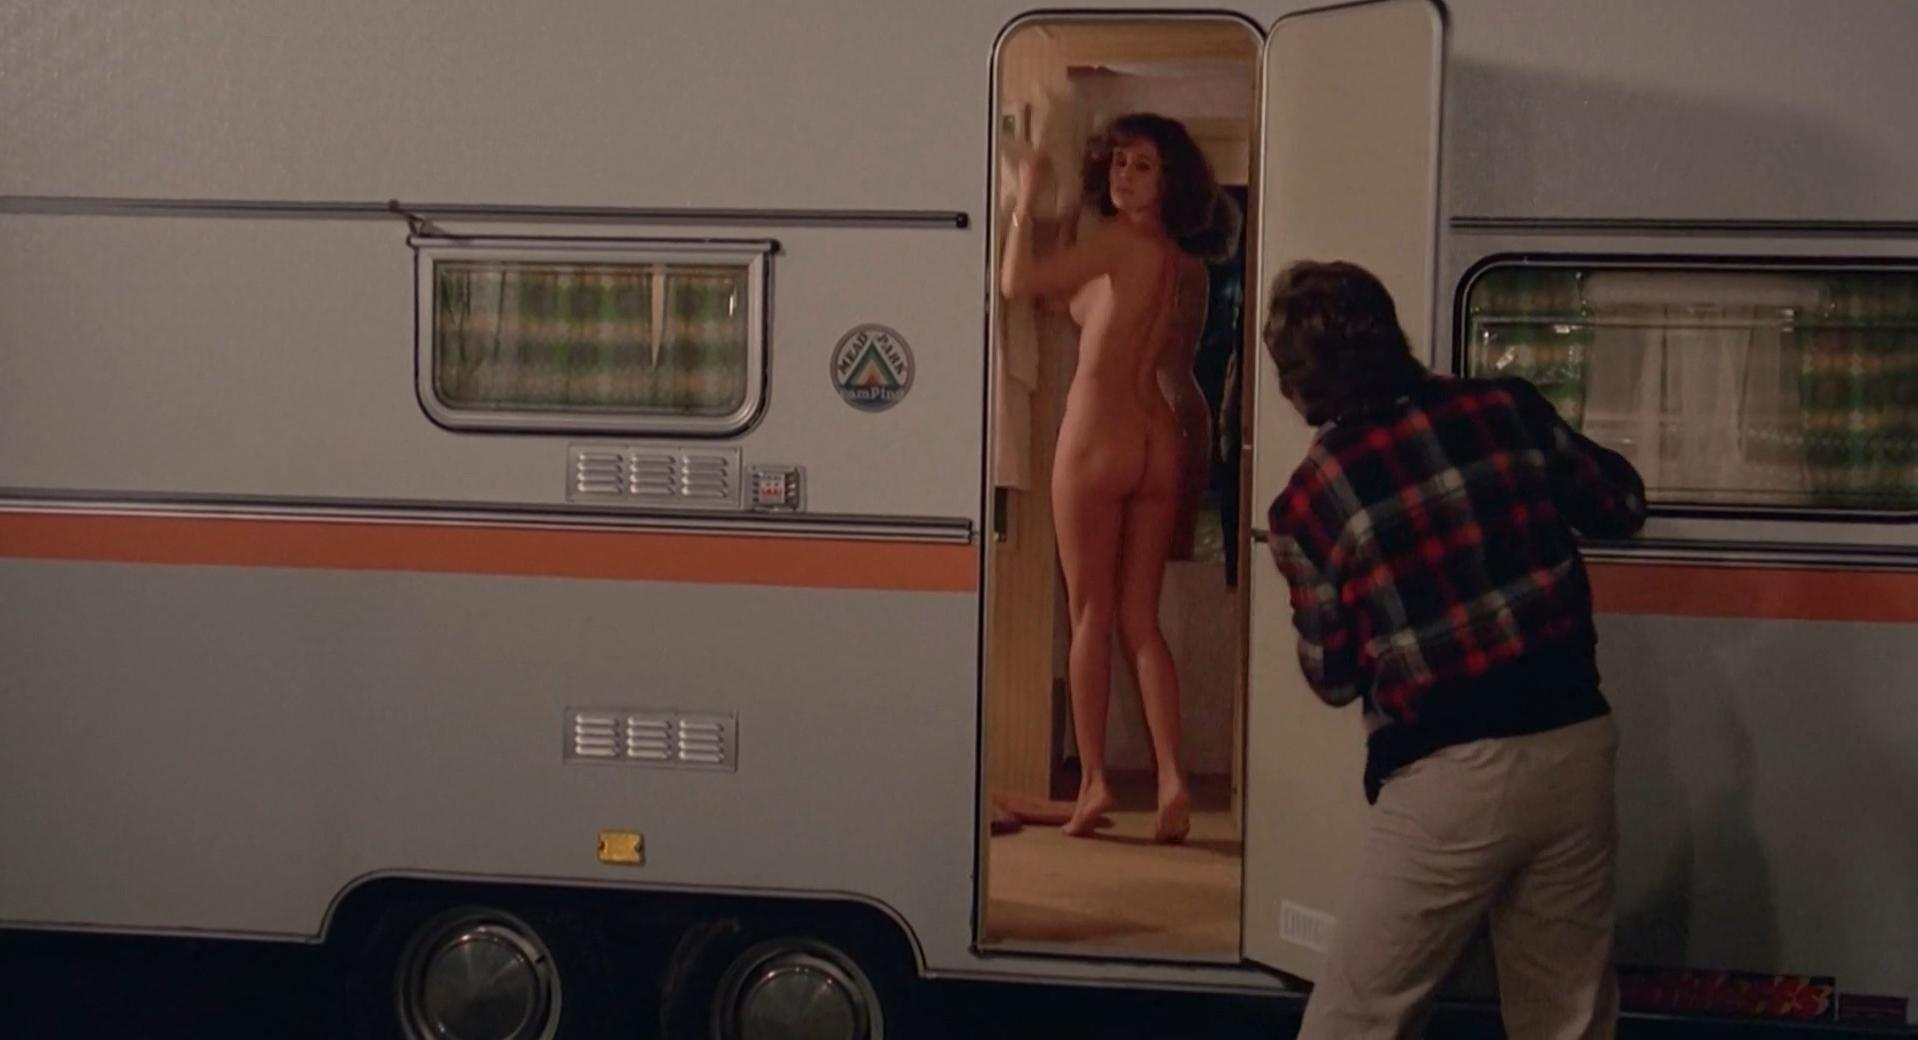 Corinne Clery nude - Autostop rosso sangue (1977)